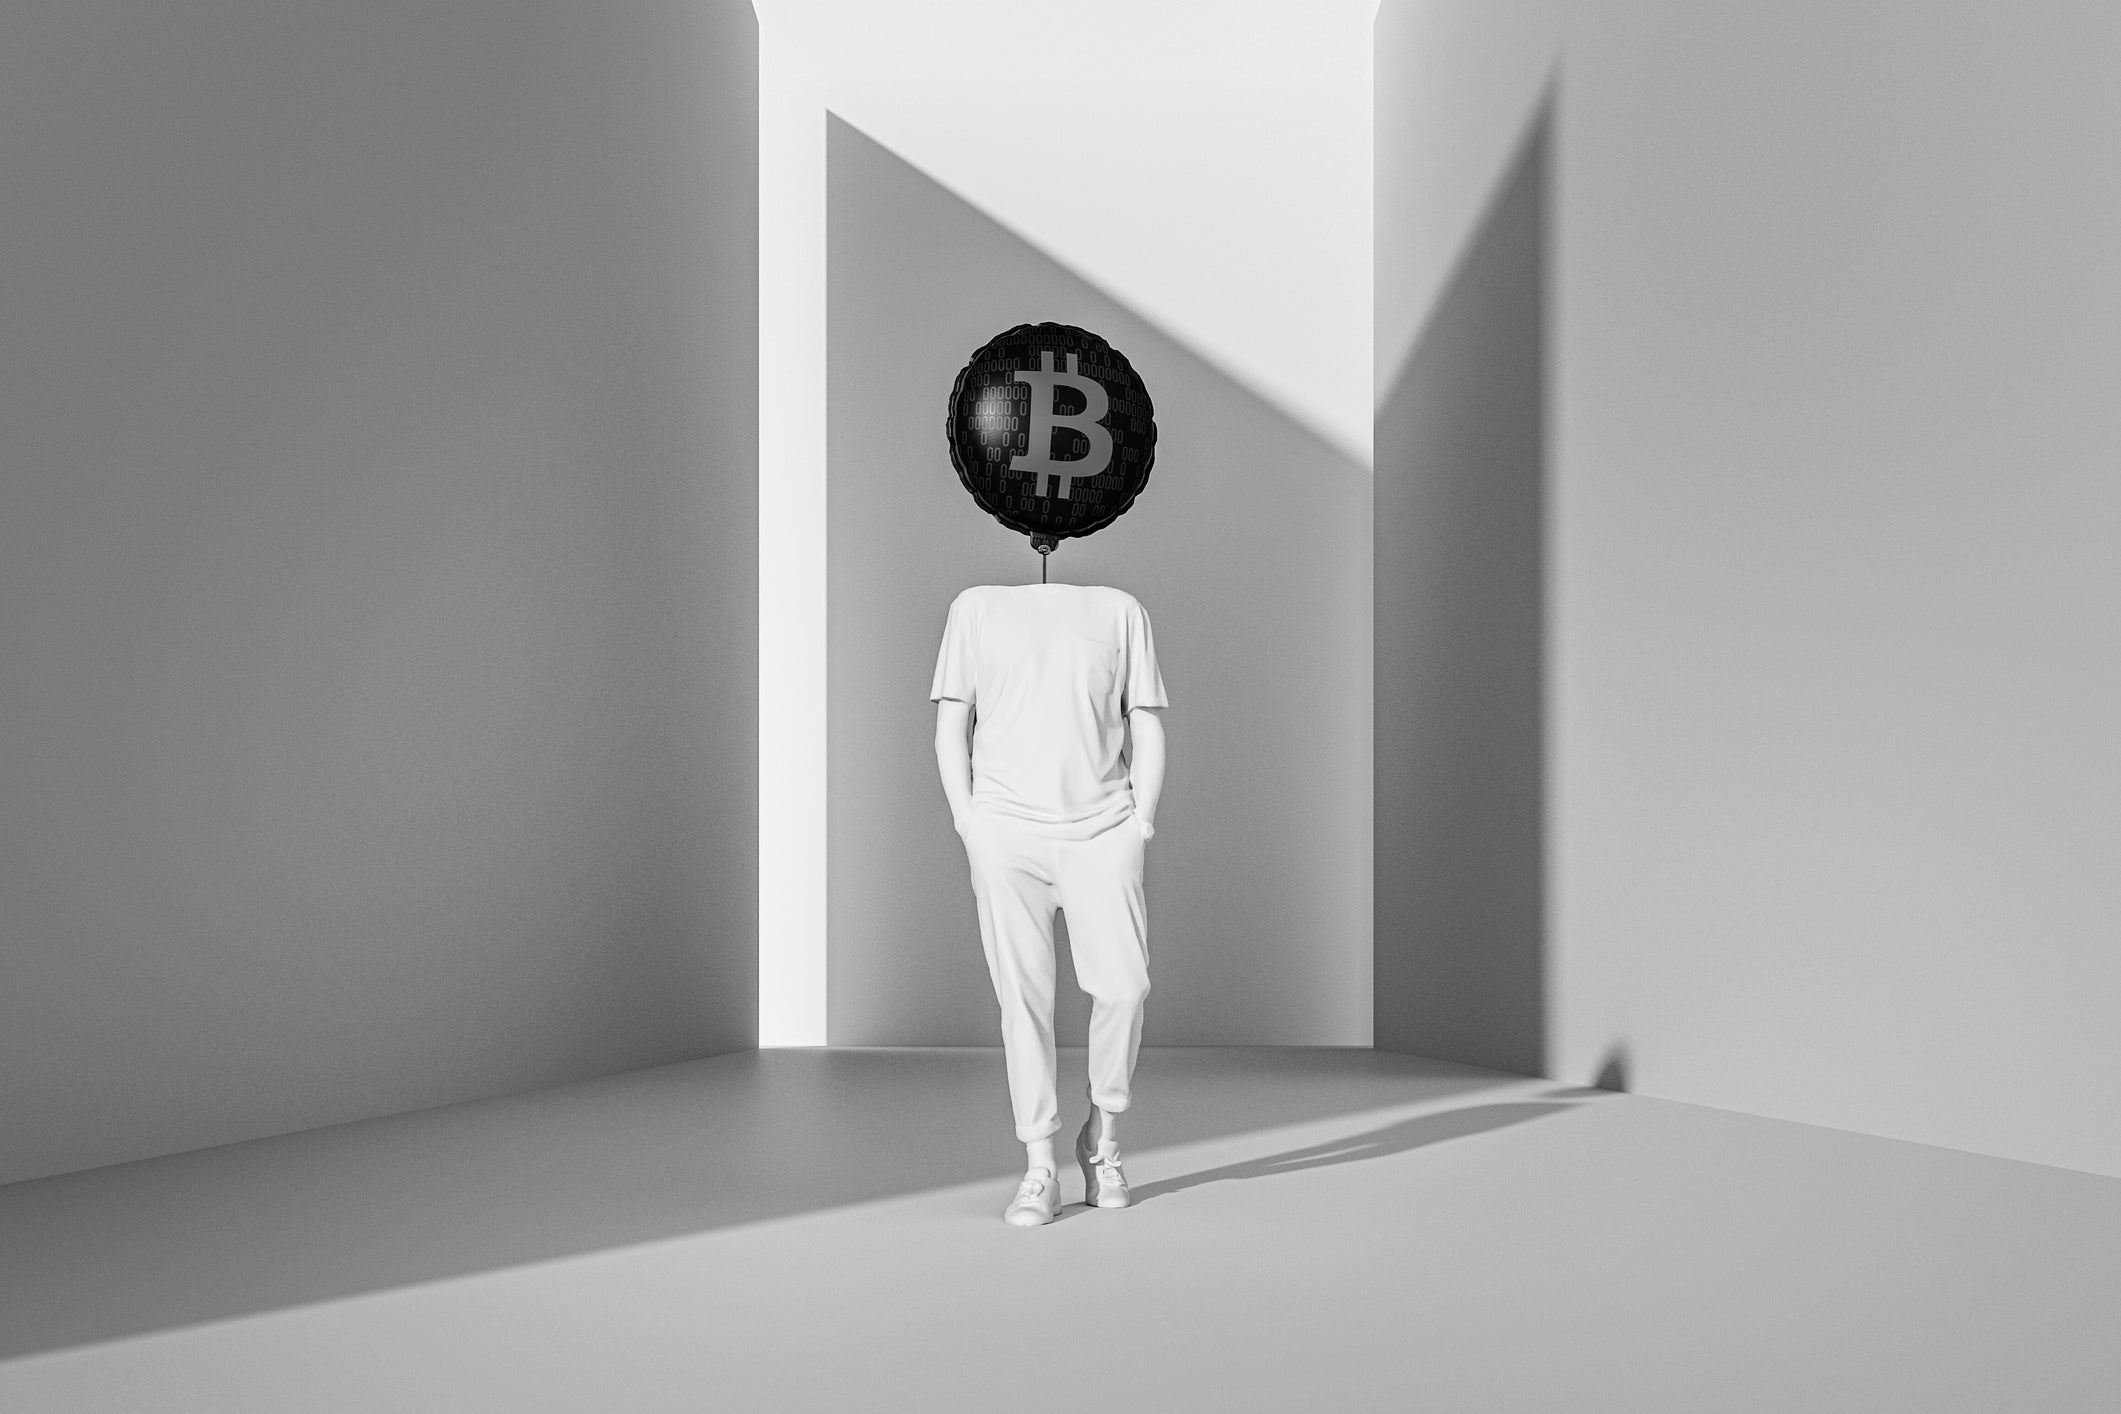 The Only Reason I Own Bitcoin